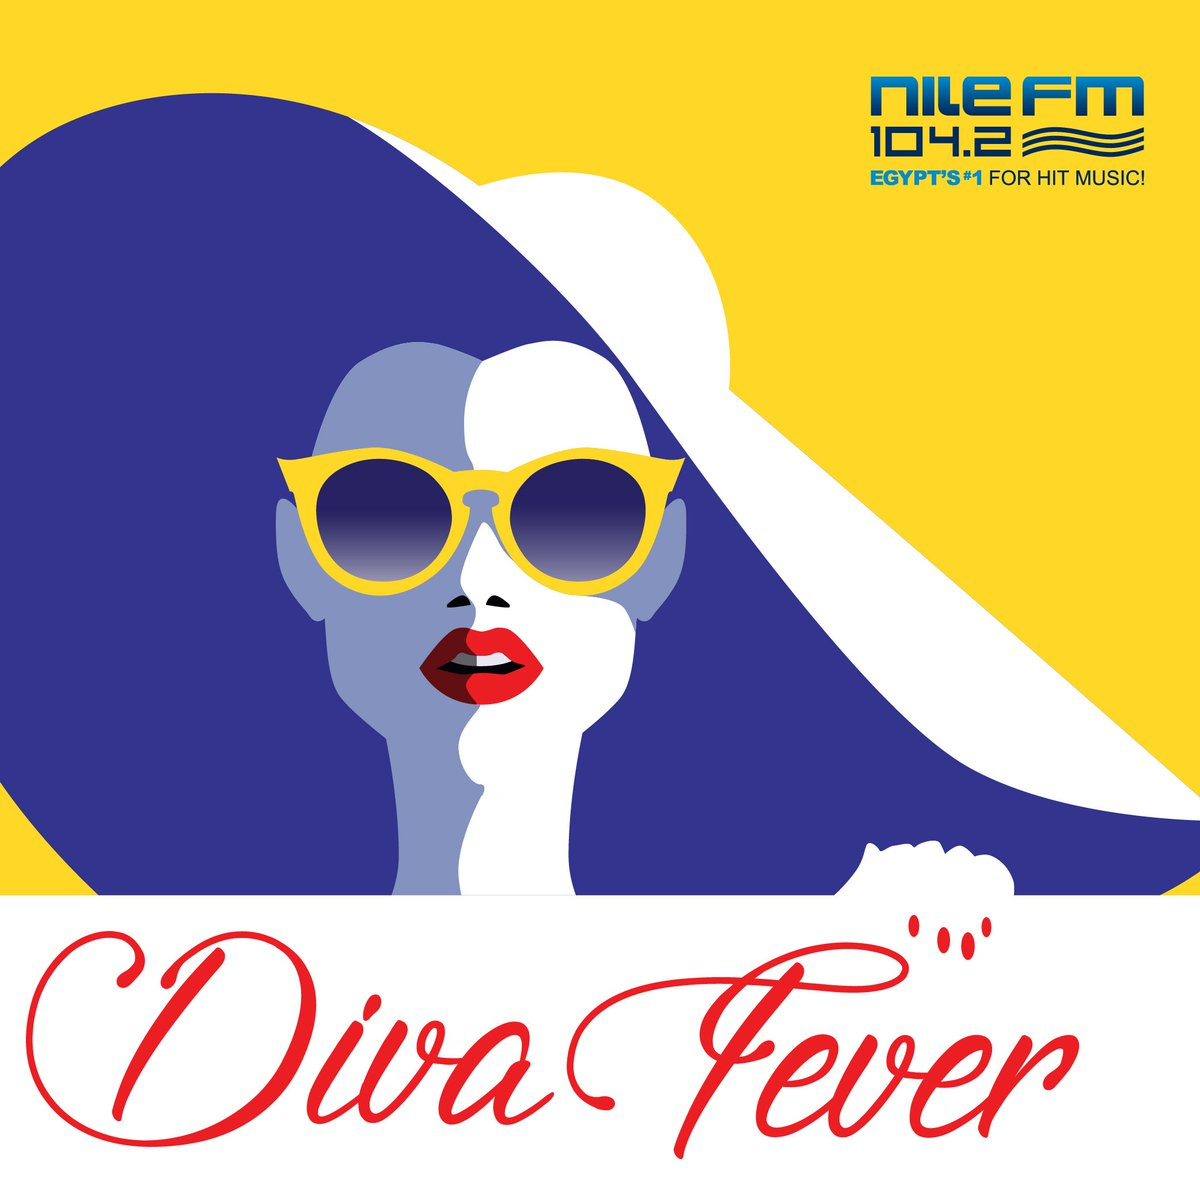 It's time for our groovy segment dedicated to past & present female singers ONLY! Send in your #DivaFever song requests. #TheAfternoonShow